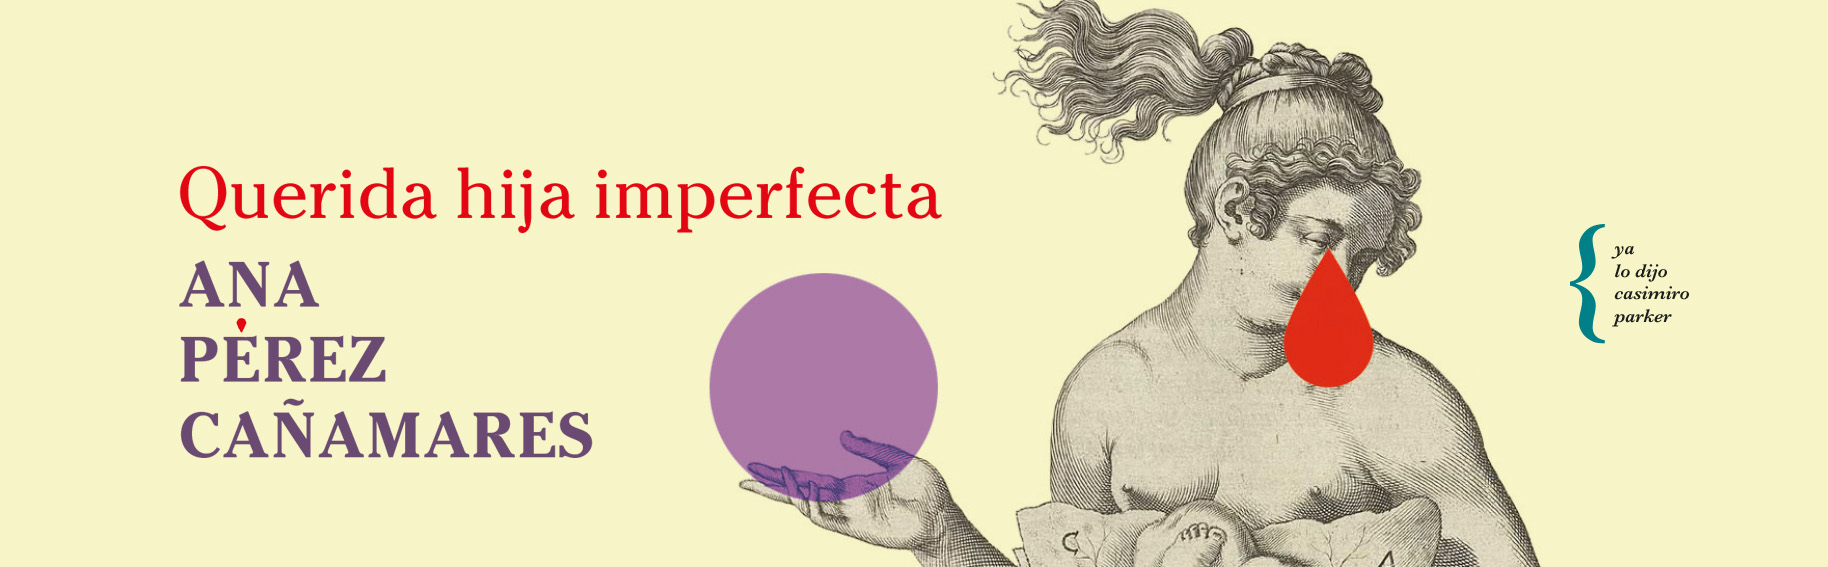 querida hija imperfecta